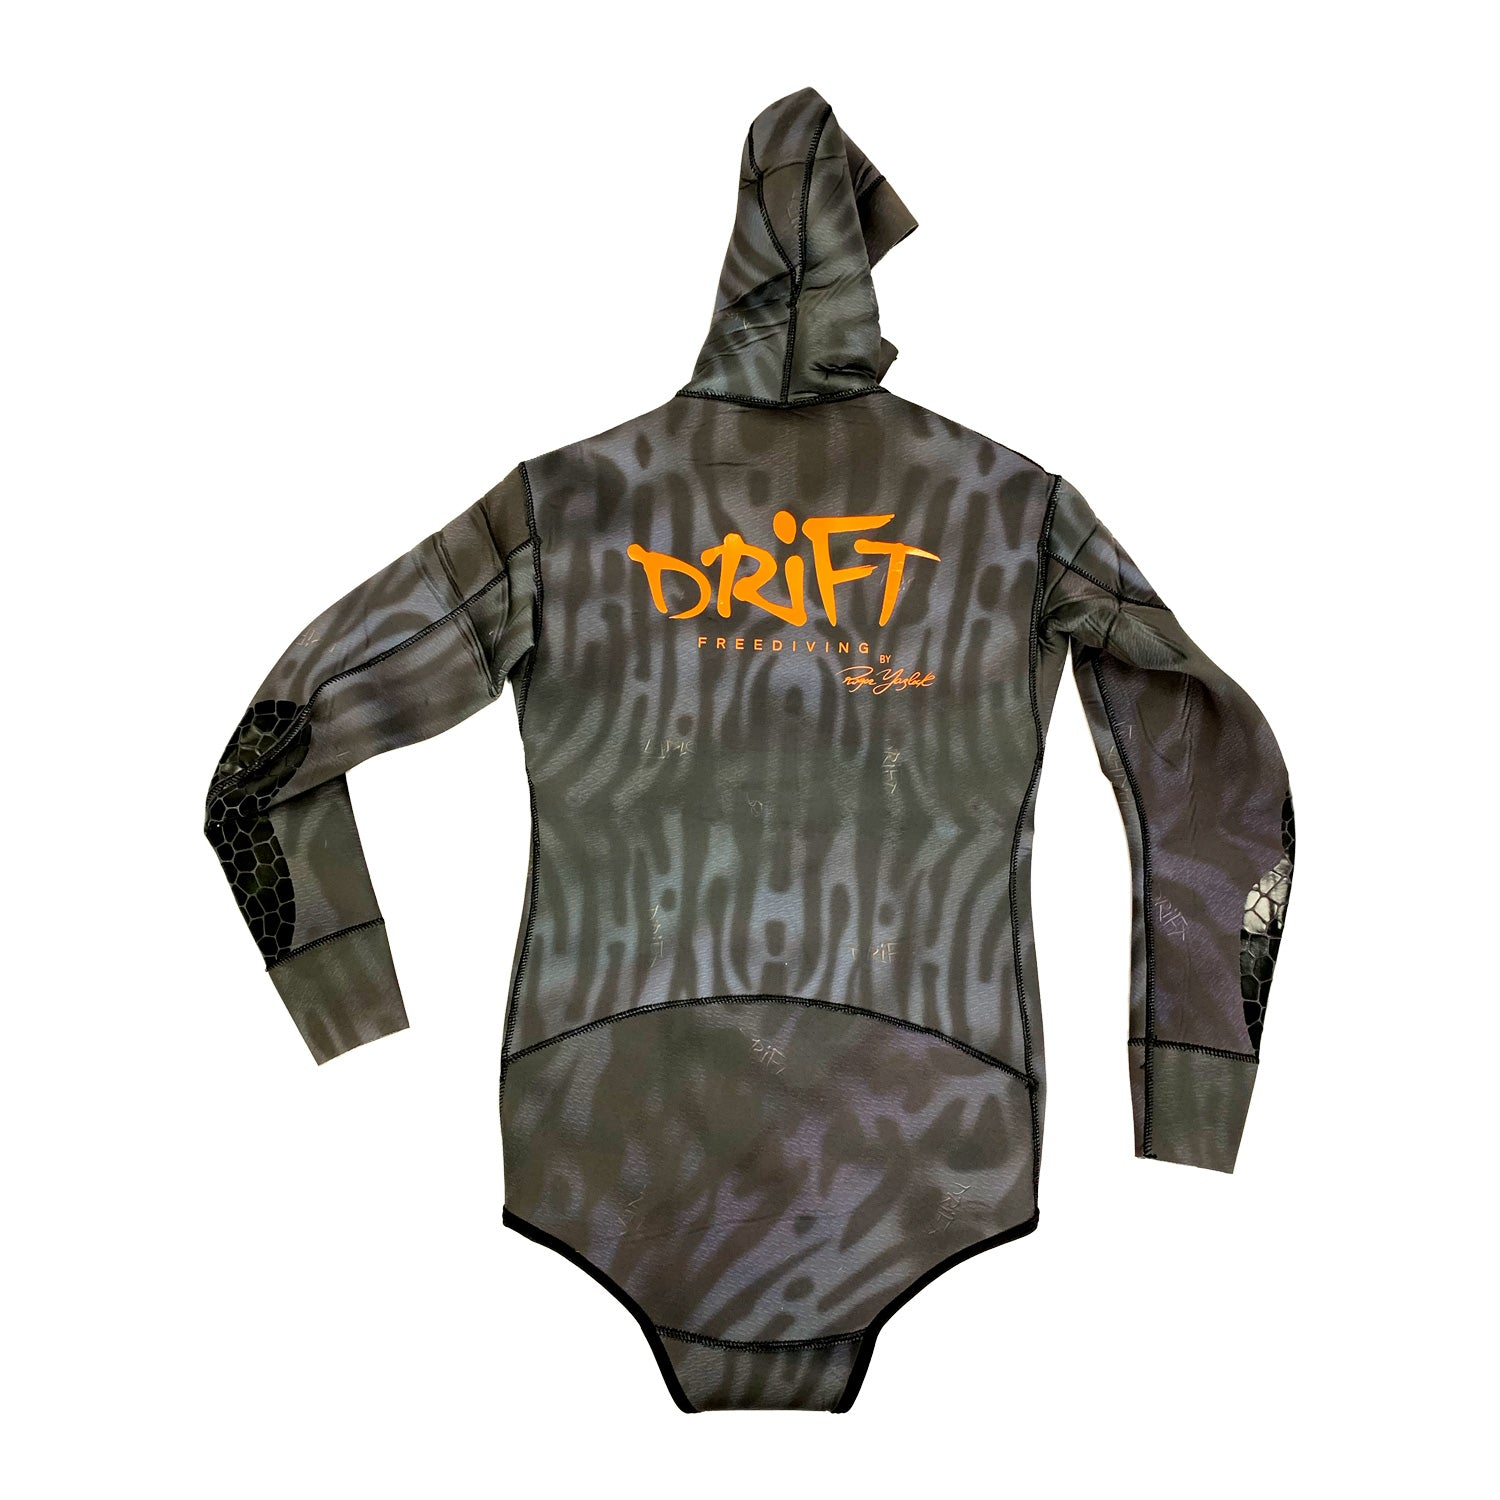 """Drift """"Sand Tiger"""" Wetsuit Jacket - Back view"""